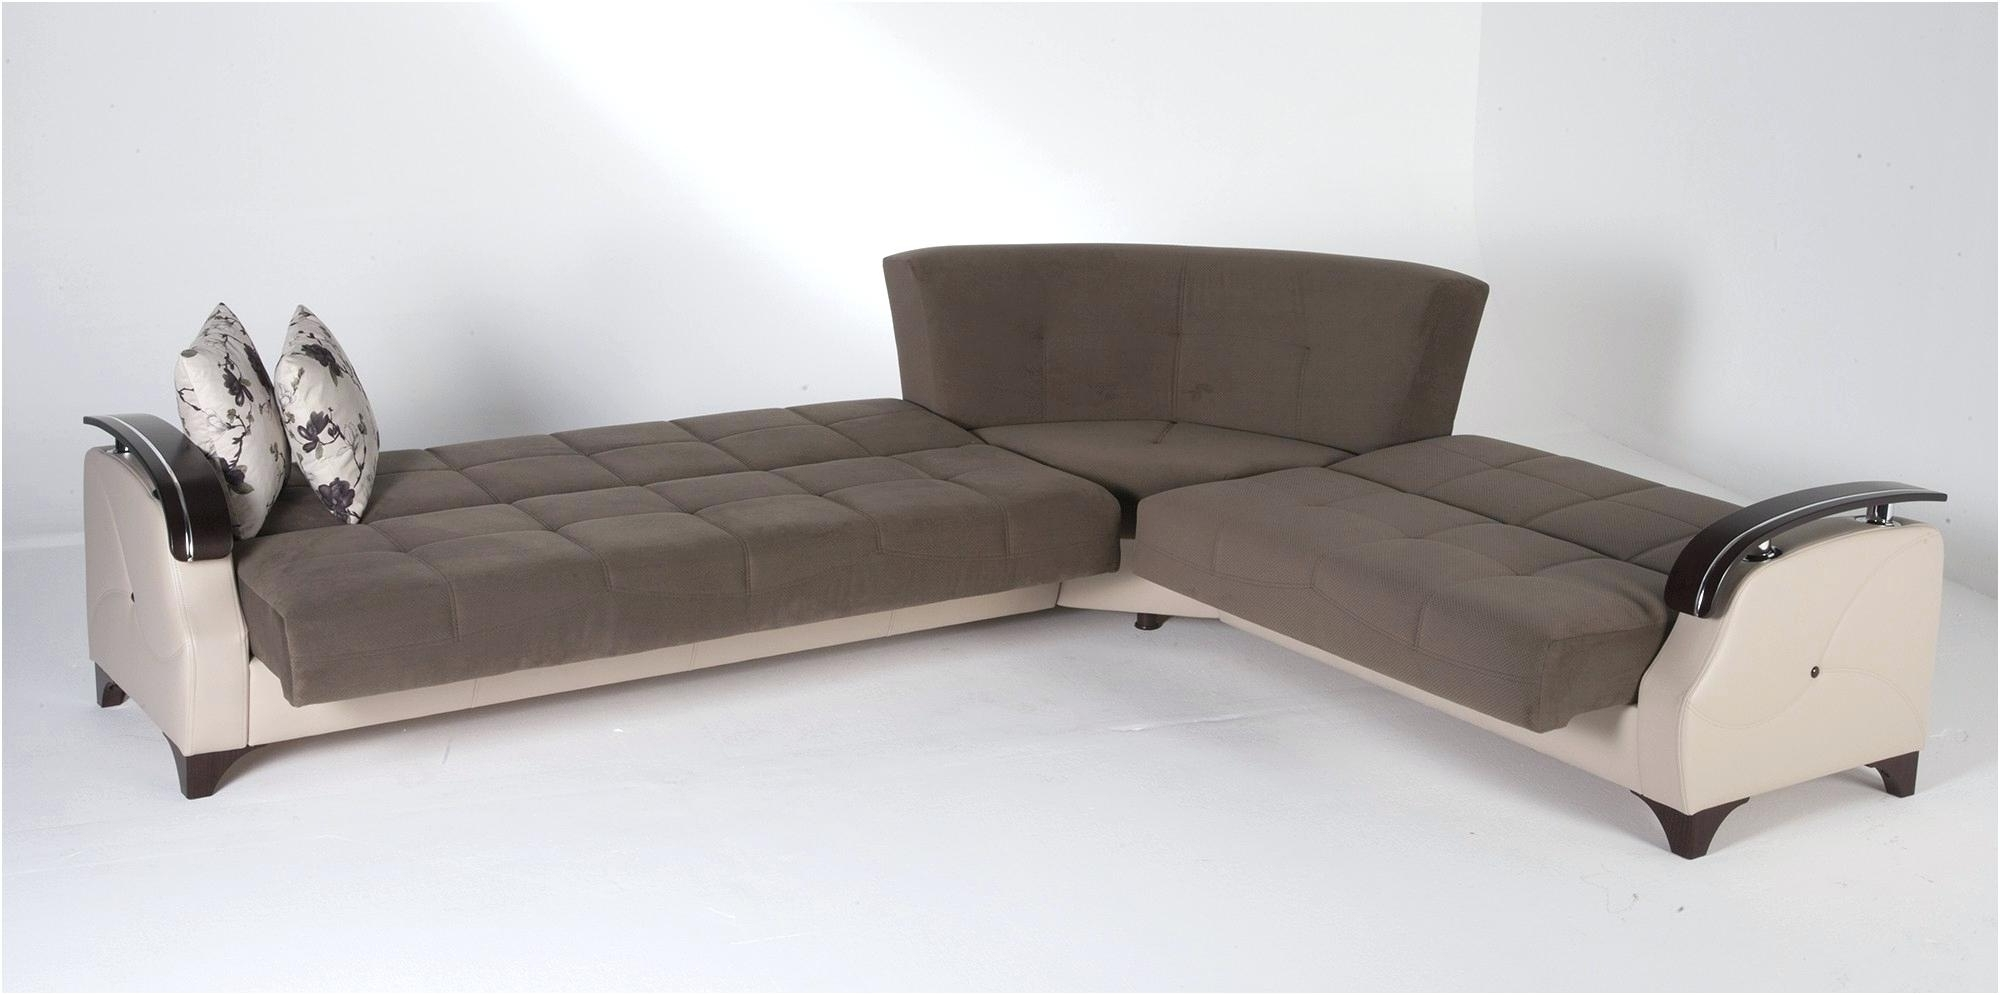 Chaise Sleepers Intended For 2017 Sectional Sofa With Sleeper Sleepers On Sale Couch Queen Kuser (View 6 of 15)